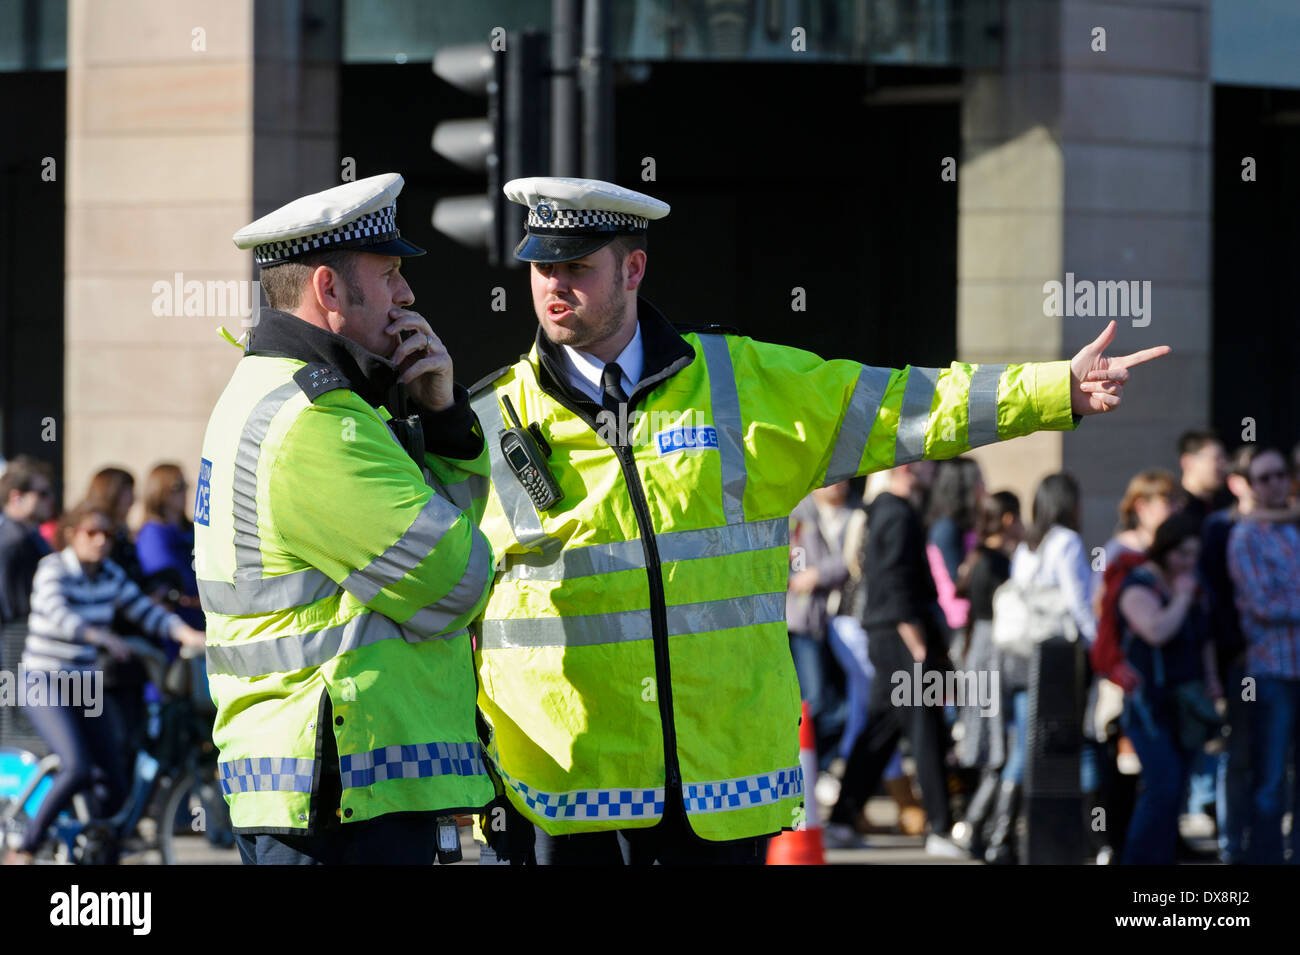 Two uniform Metropolitan Traffic Police officers talking about a situation, London, England, United Kingdom. - Stock Image